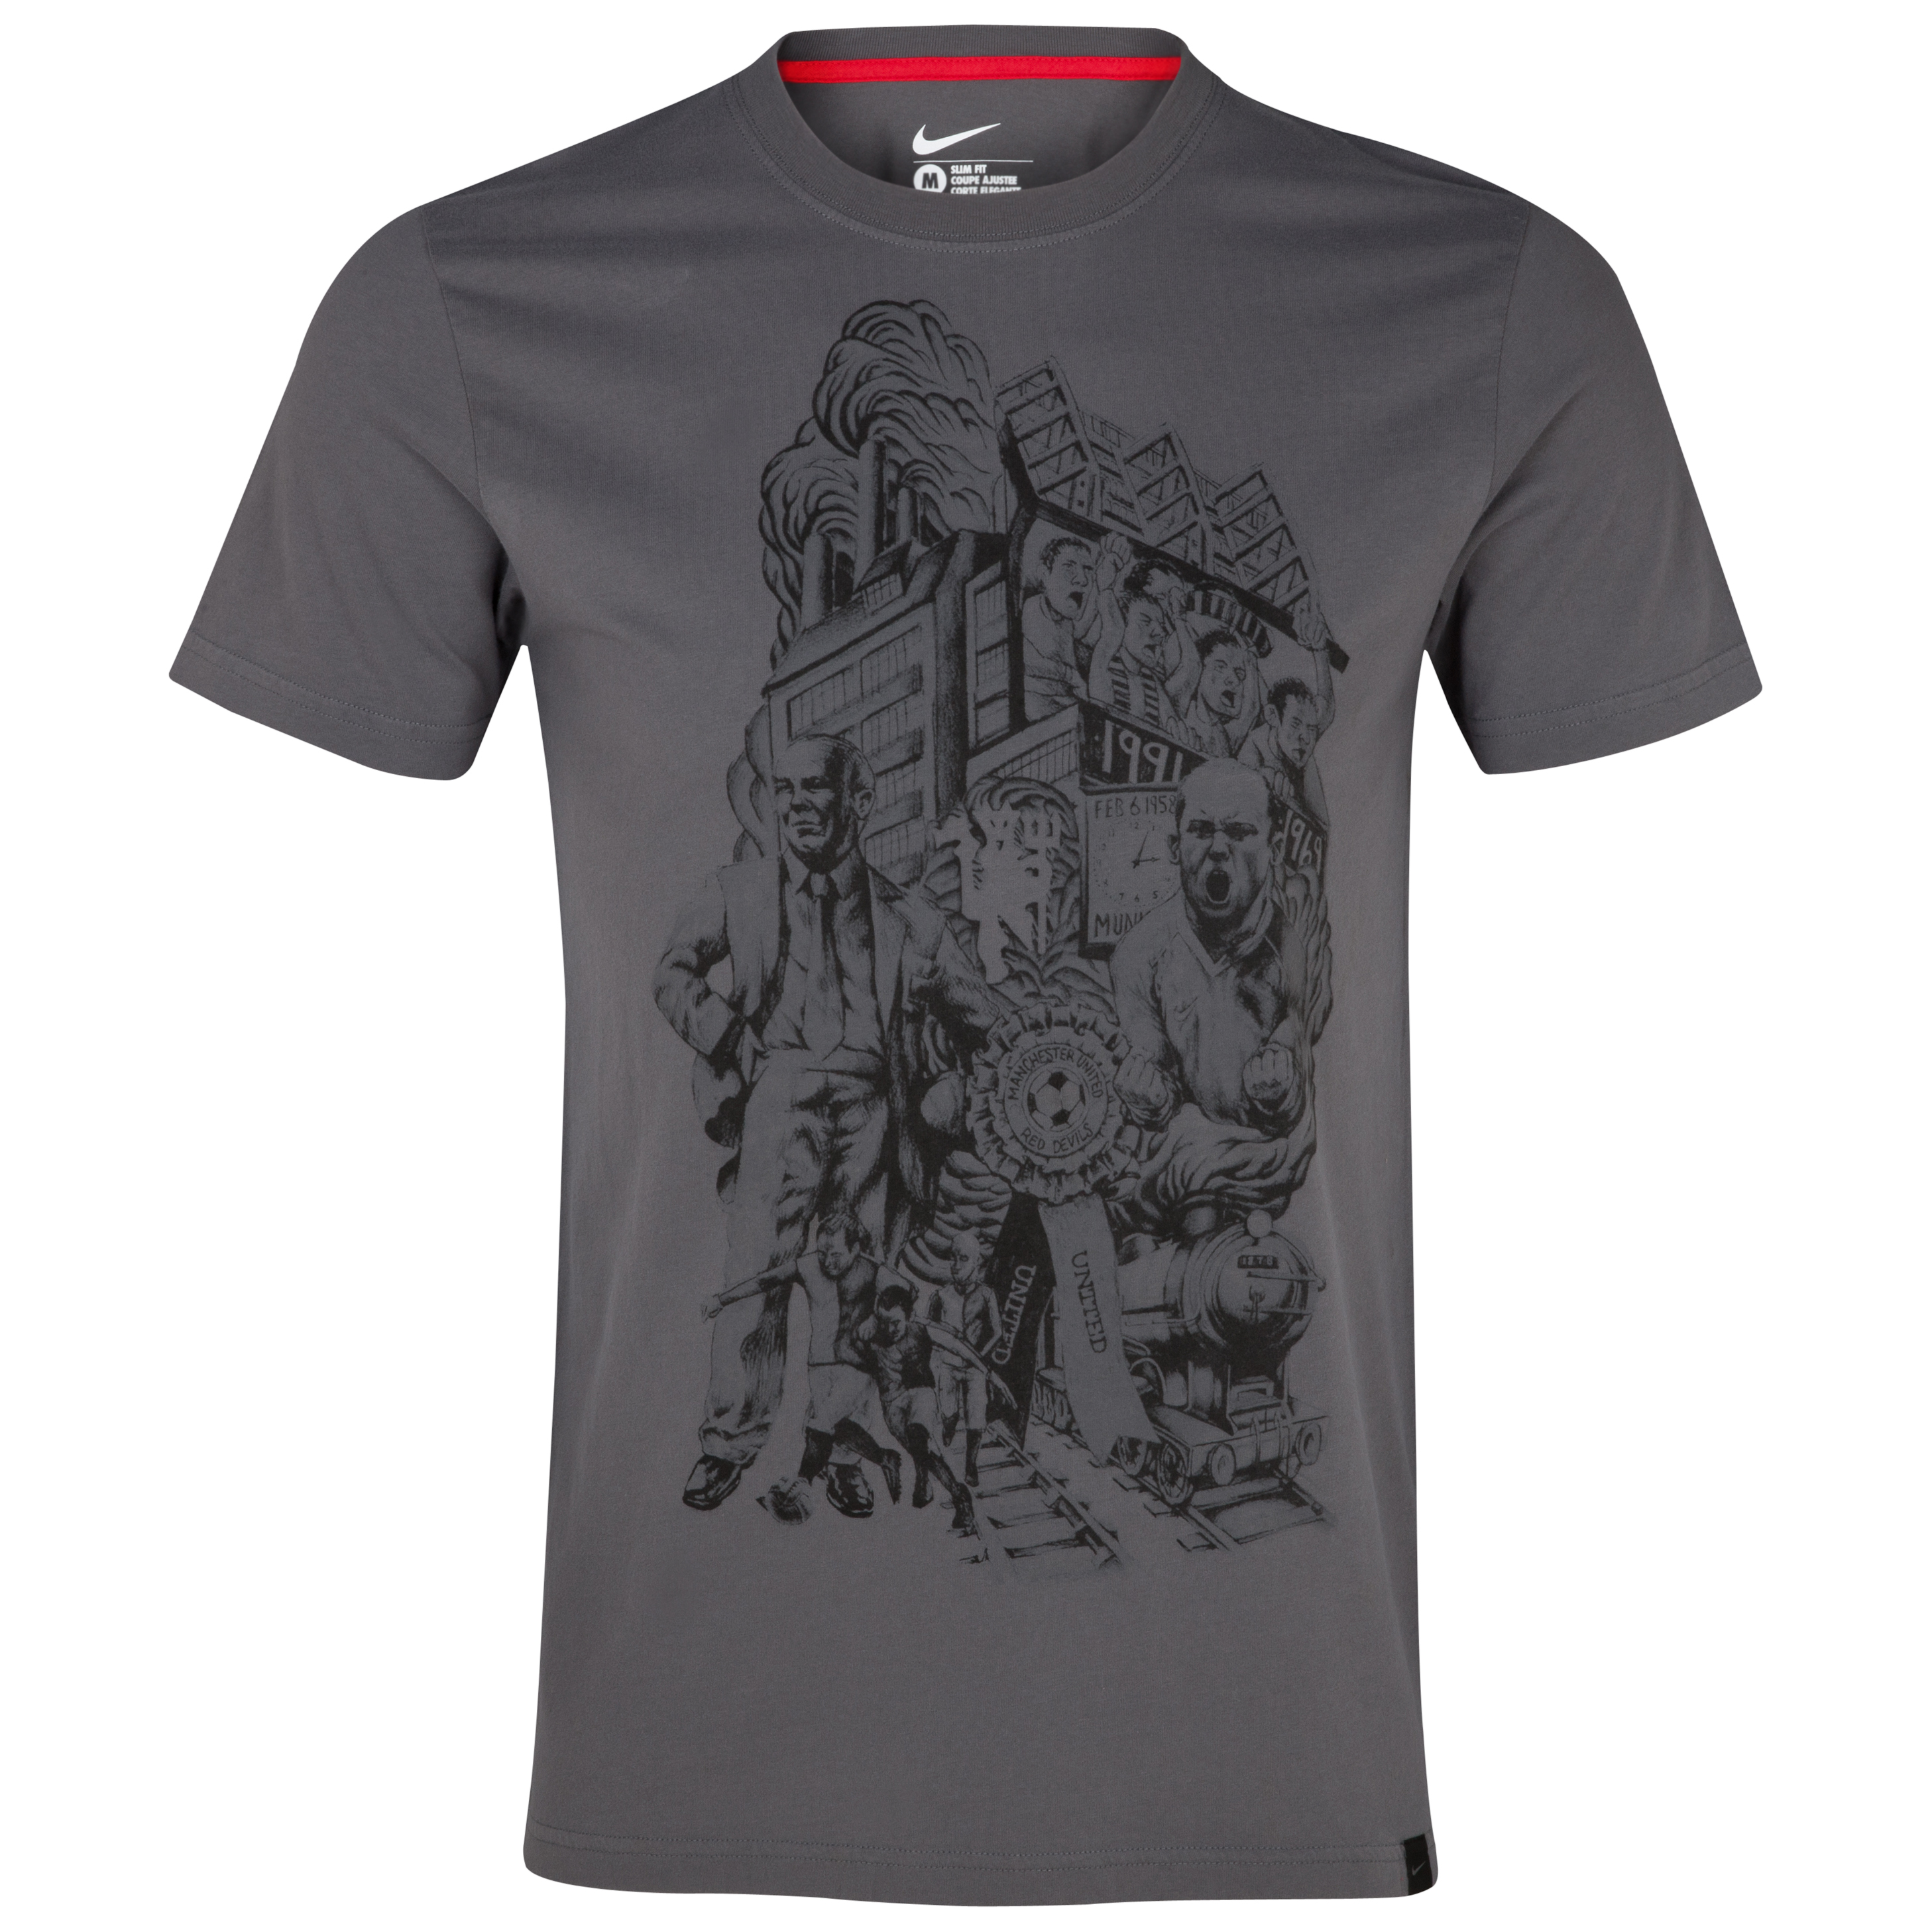 Manchester United Authentic Tee - Dark Grey/Diablo Red